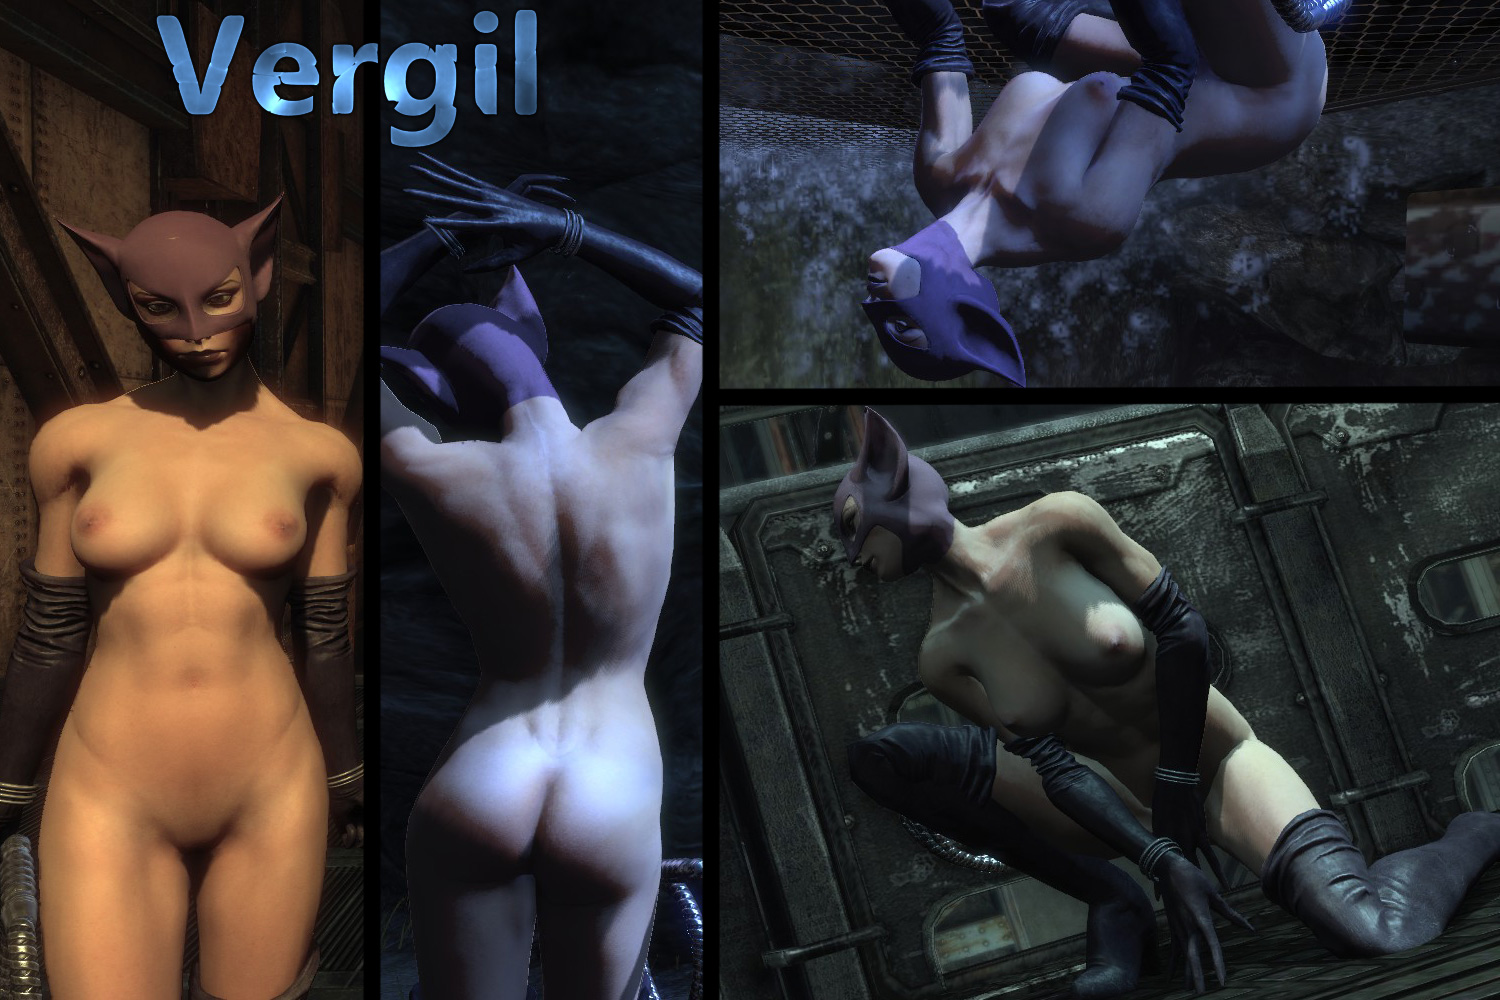 Batman arkham city naked women mod sexual film